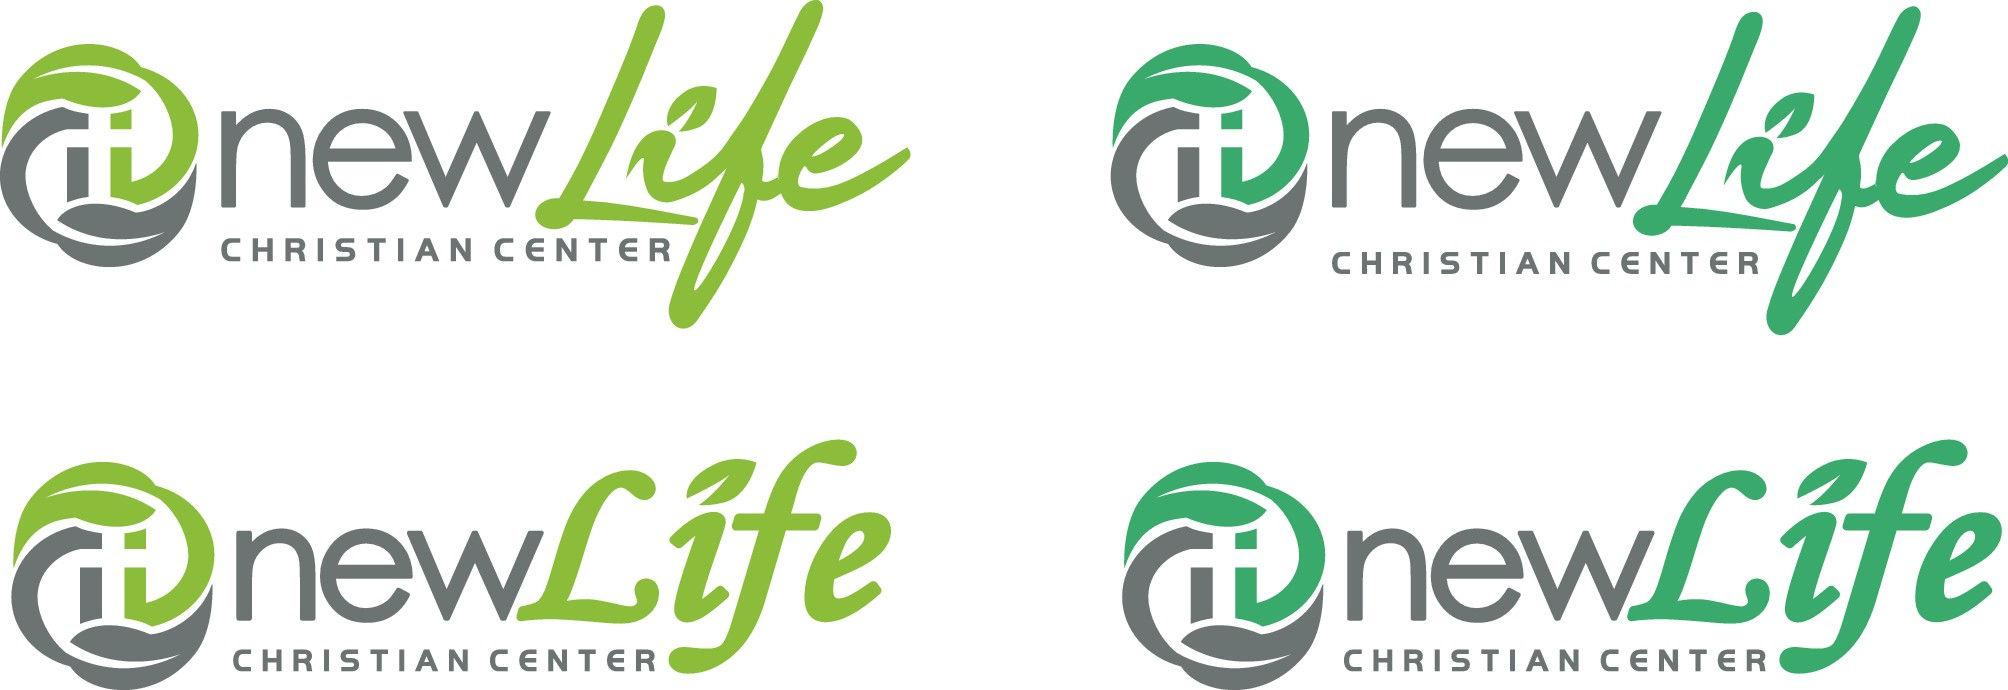 Create a edgy, comtemporary logo for exciting and fun church.